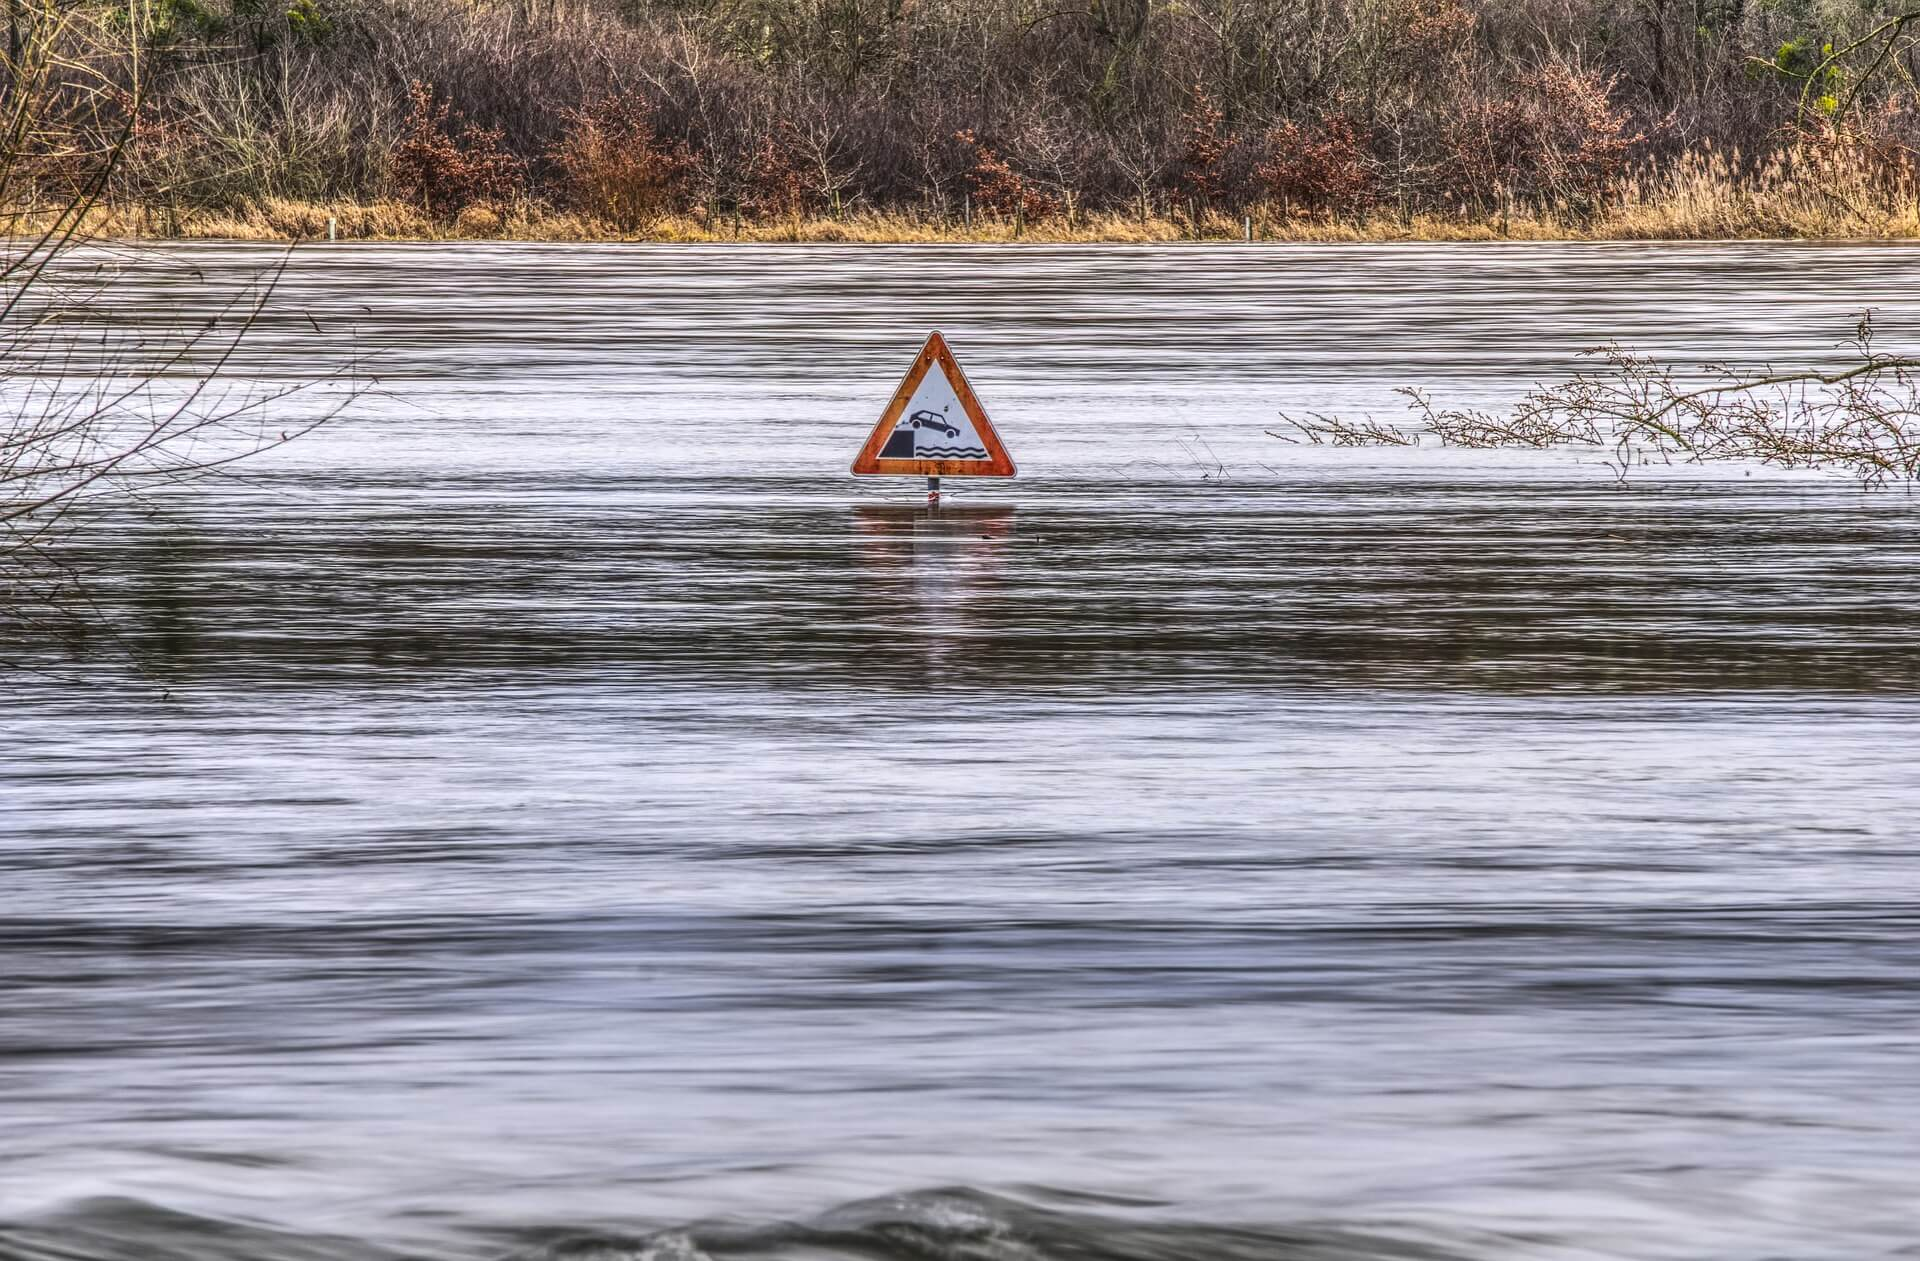 flood nearly covering street sign